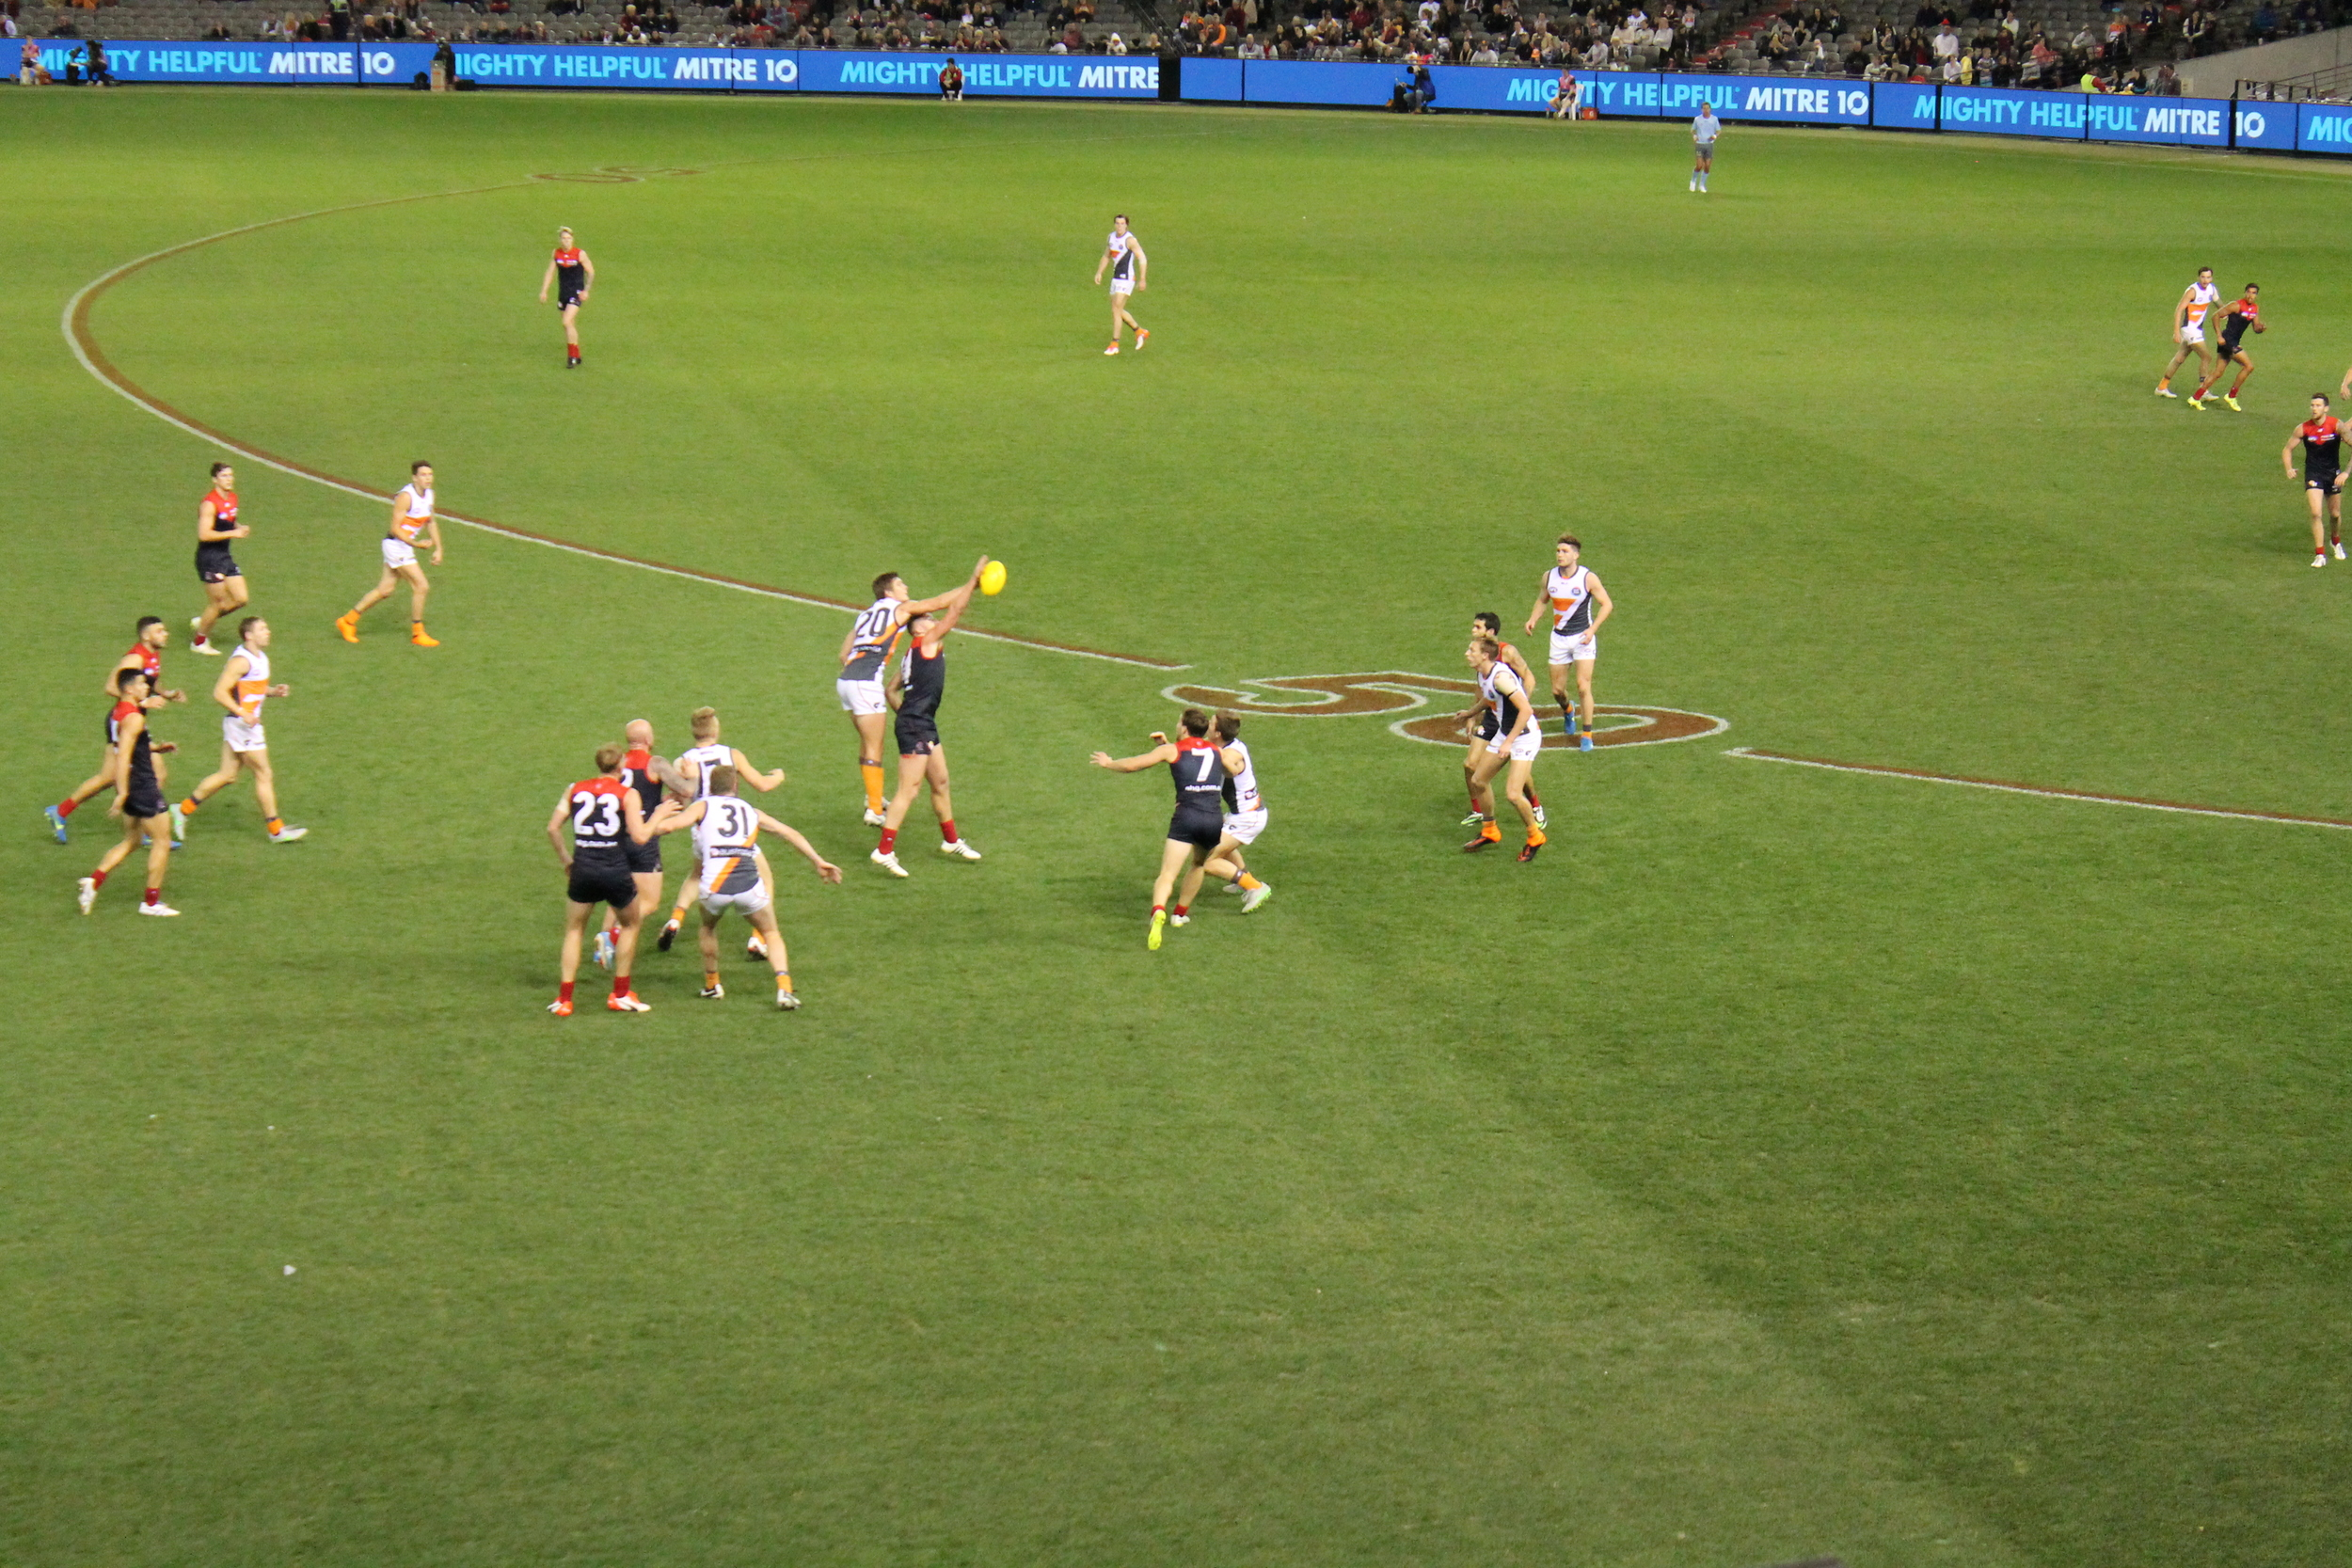 Aussie Rules Football in Melbourne